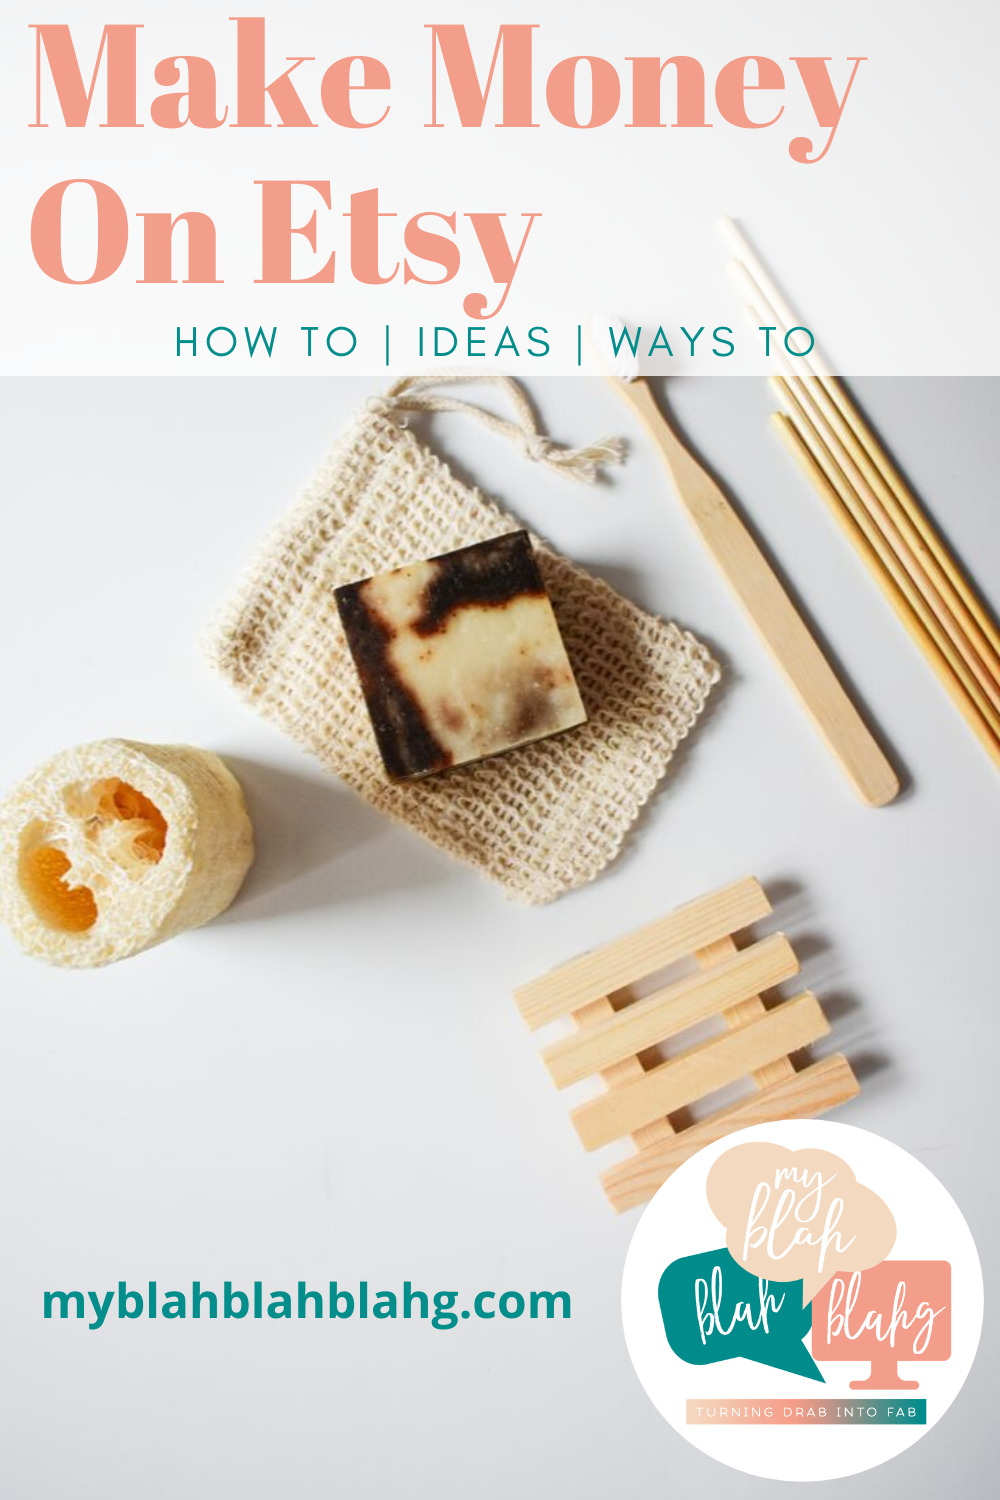 Make money on Etsy! If you have a craft you're passionate about, turn it into cash with your own Etsy shop. Here are the tips and tricks to help. #myblahblahblahgblog #makemoneyonetsy